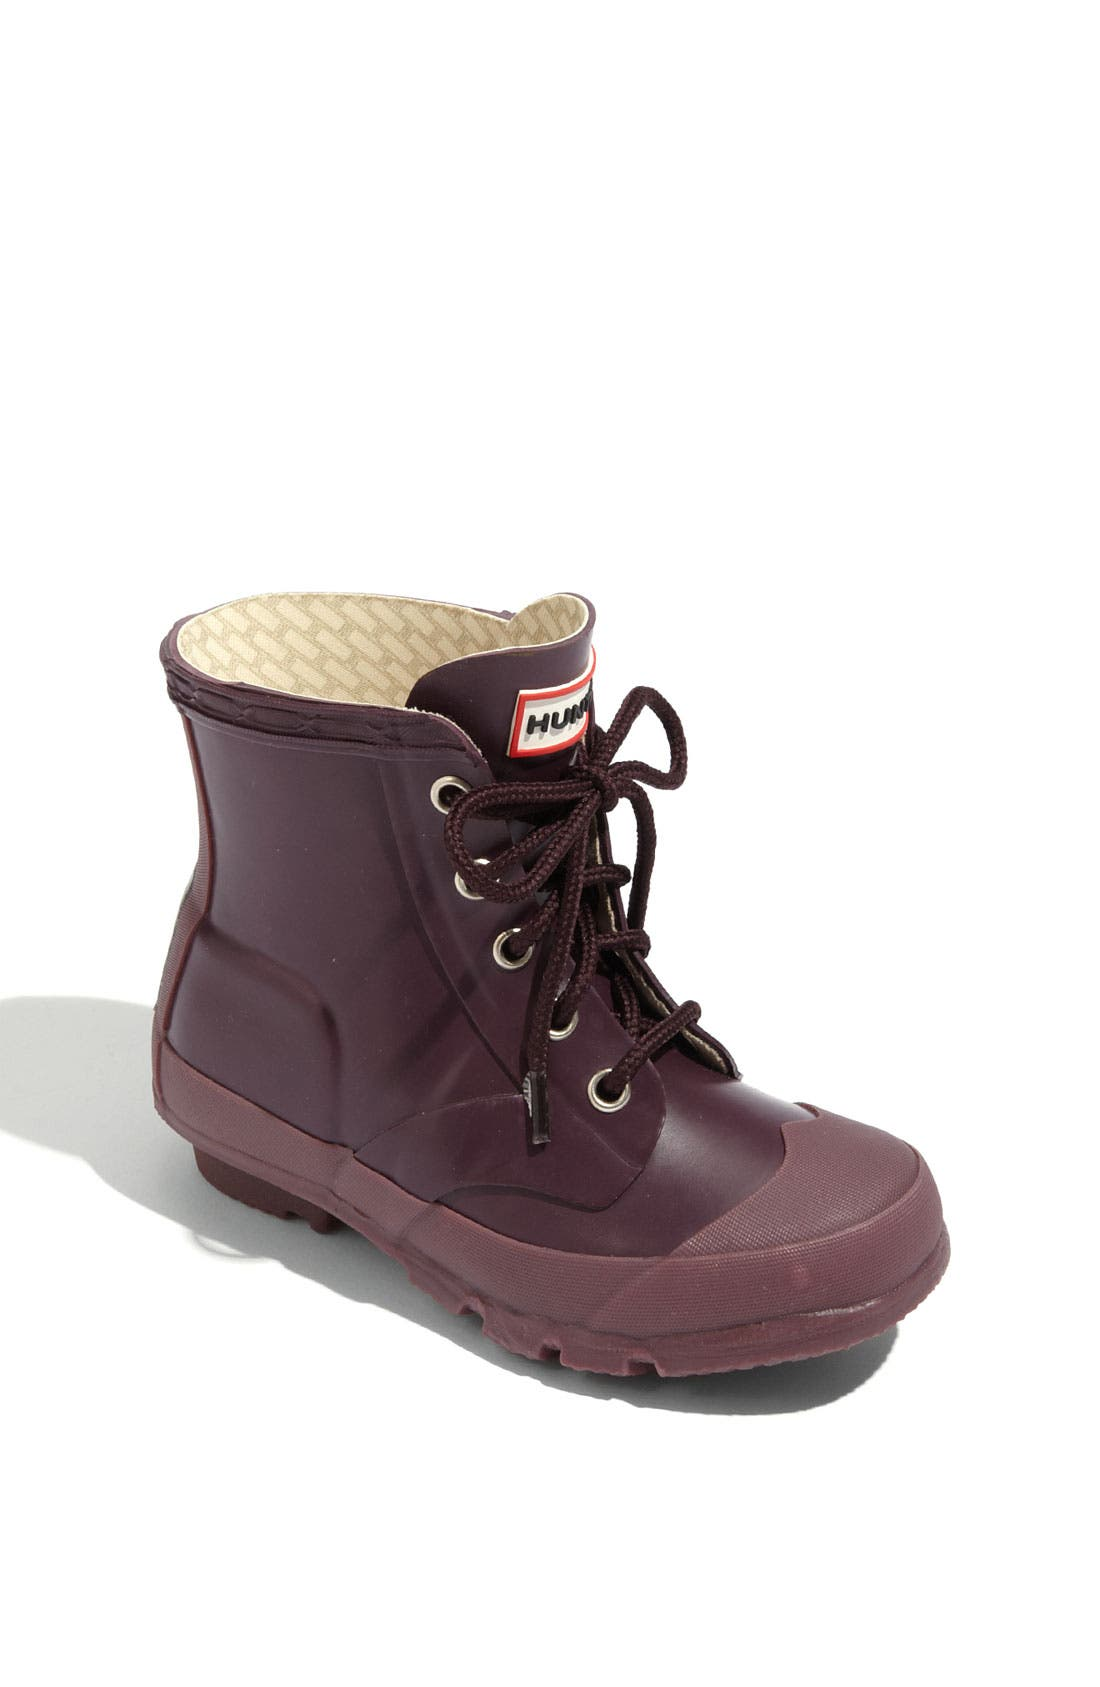 Alternate Image 1 Selected - Hunter 'Petite Brixen' Boot (Toddler & Little Kid)